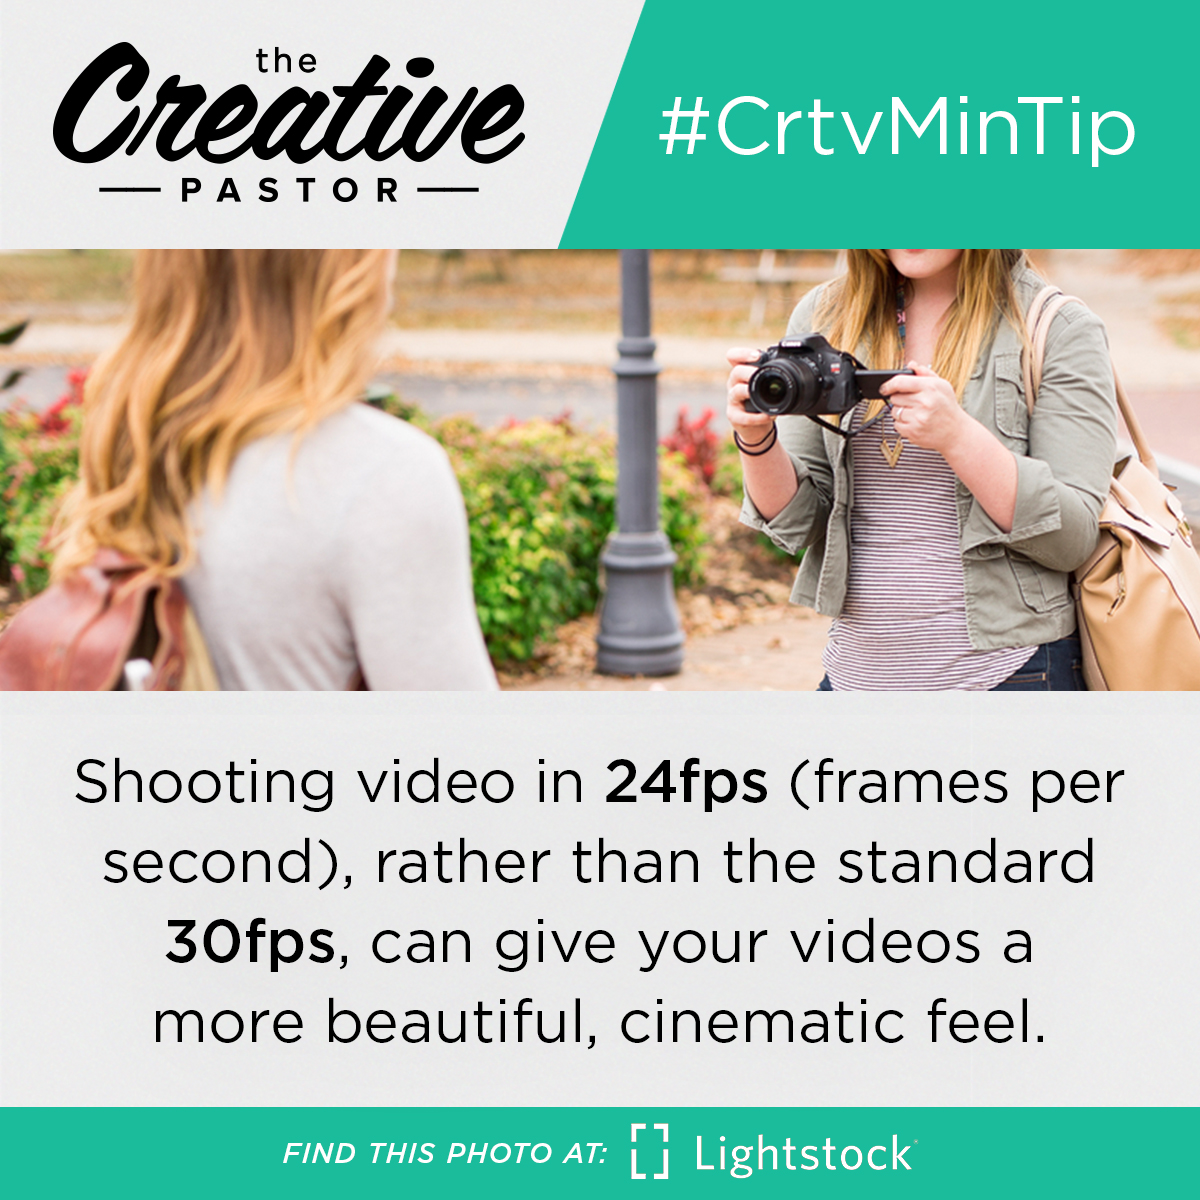 Shooting video in 24fps (frames per second), rather than the standard 30fps, can give your videos a more beautiful, cinematic feel.